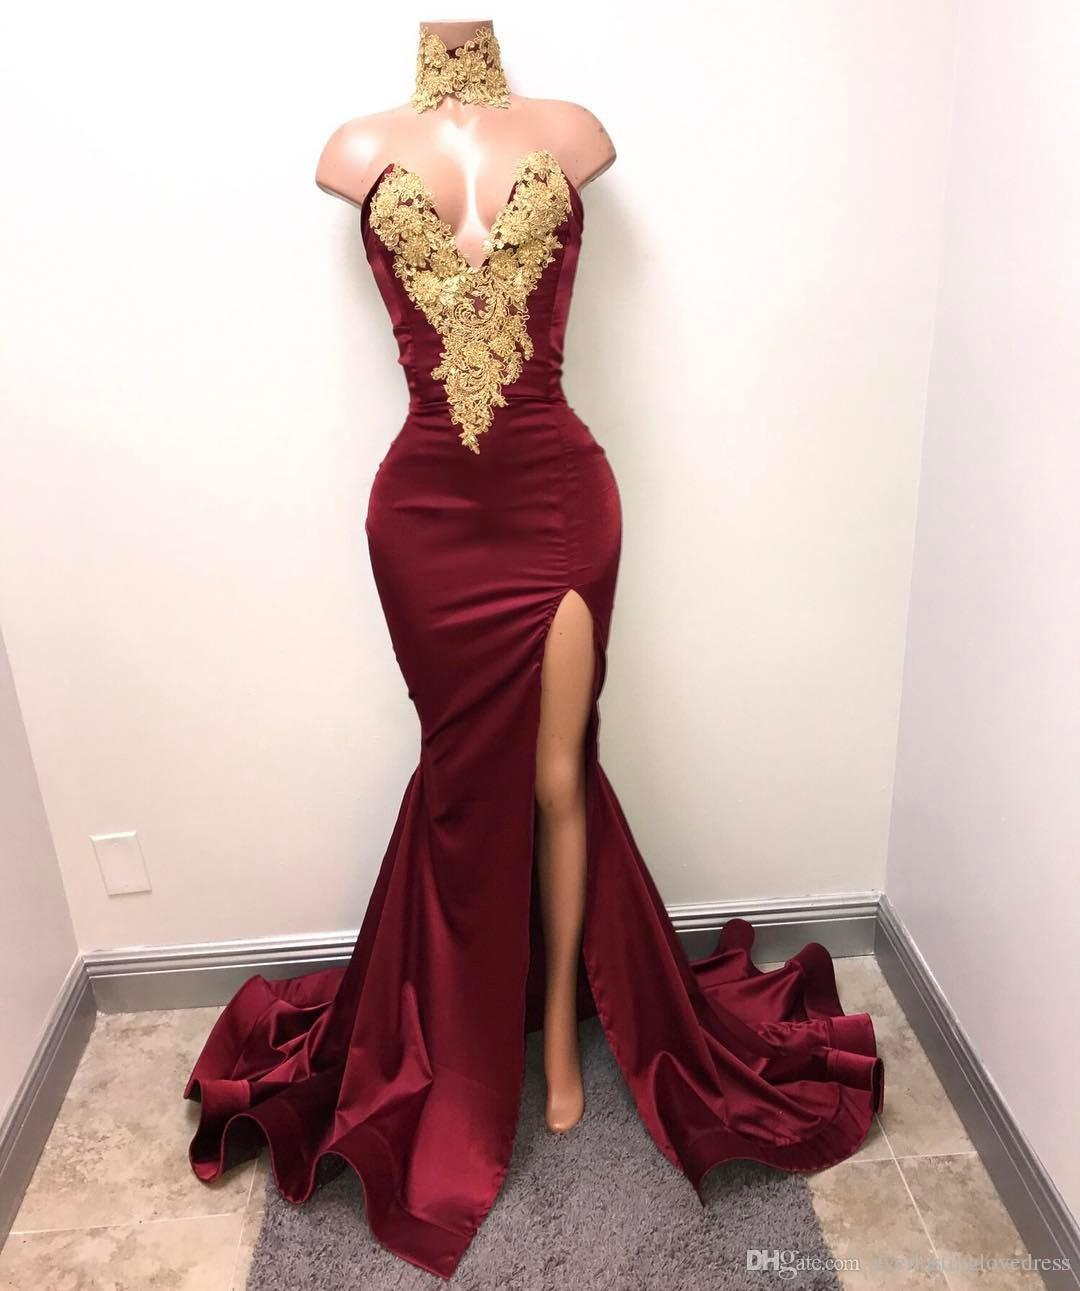 1b0069421d41 2017 Hot Sale Burgundy Mermaid Prom Dress Lace Appliques Sexy Slit Deep V  Neck Evening Gowns Formal Dresses Long Lace Prom Dress Mermaid Prom Dresses  Under ...